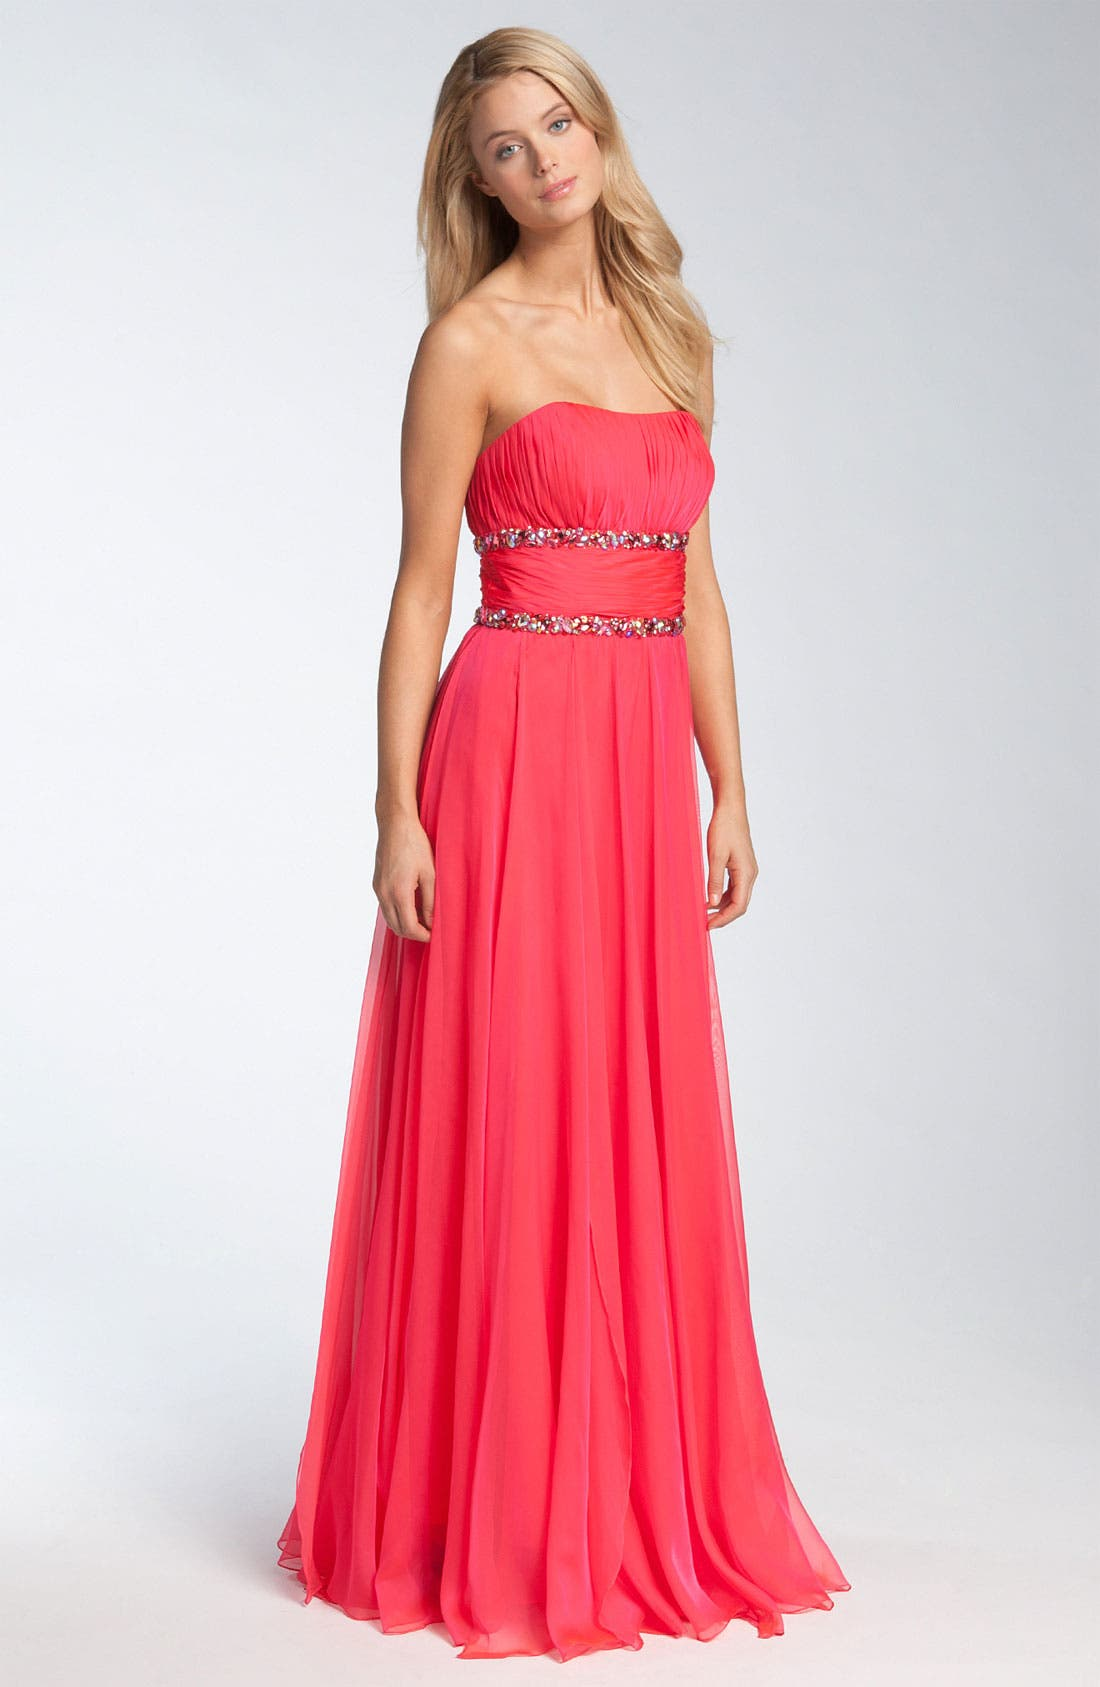 Alternate Image 1 Selected - La Femme Fashions Strapless Beaded Trim Gown